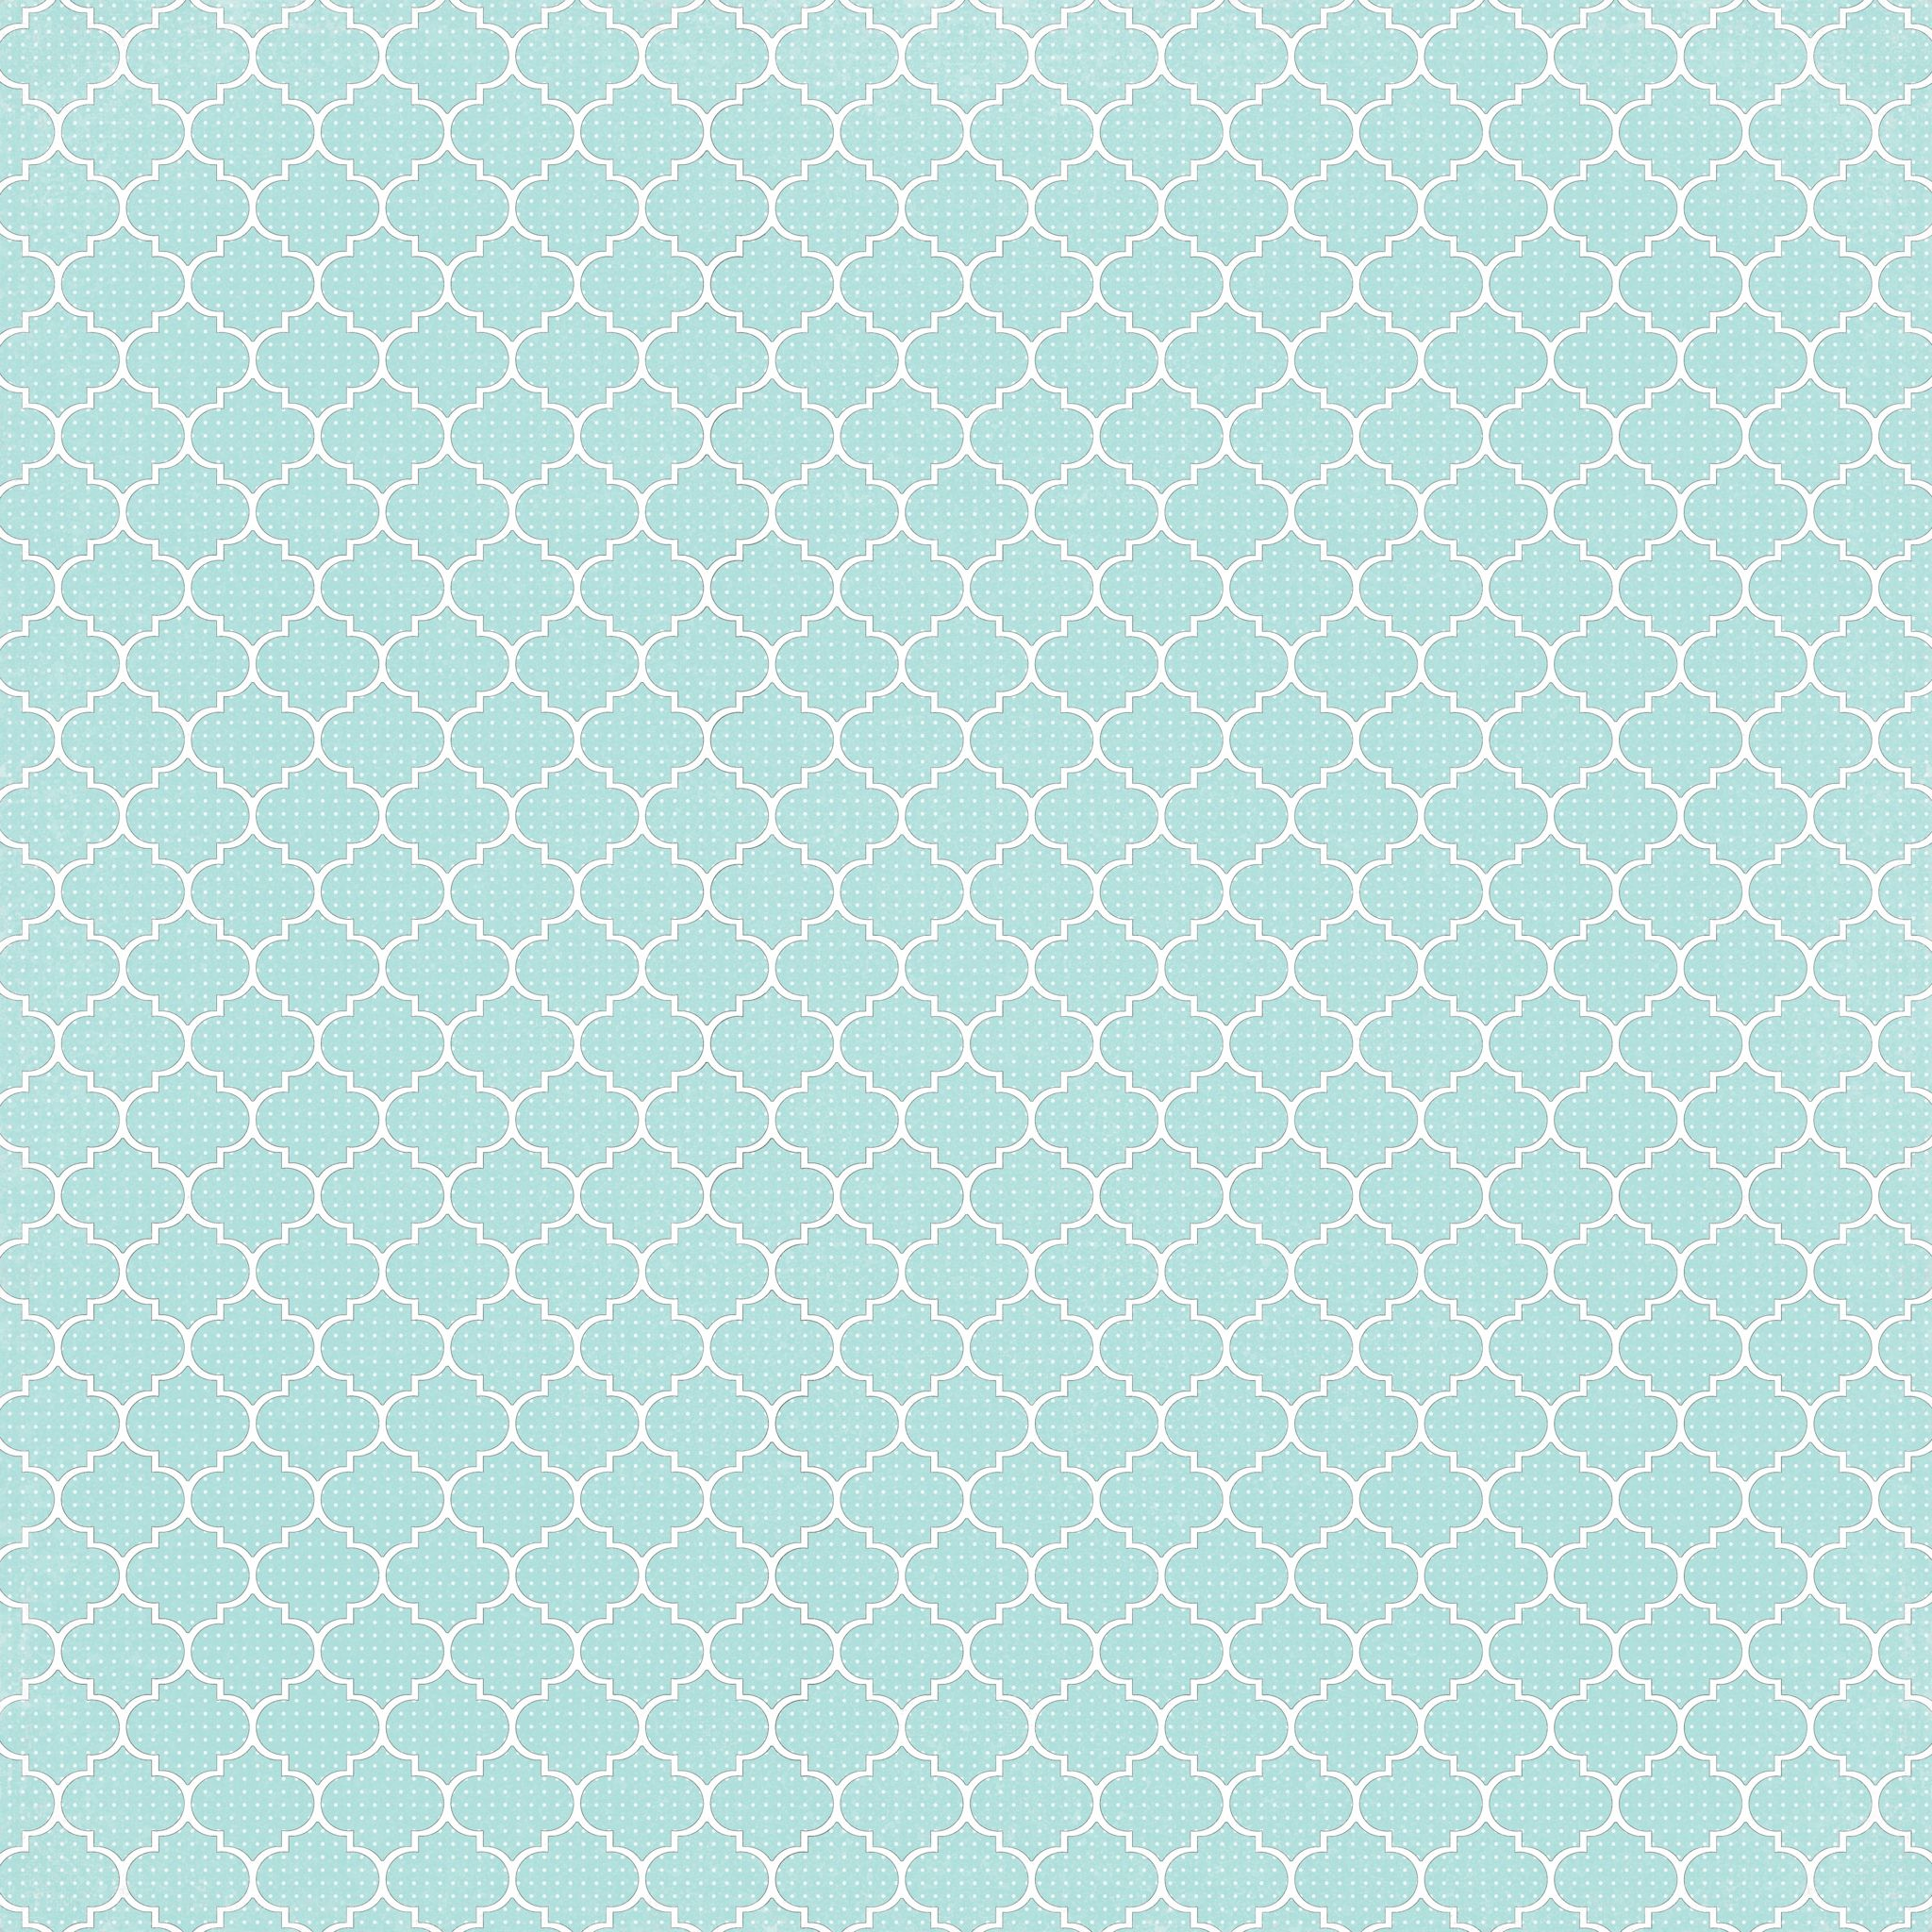 6 Light Turquoise Dotted Moroccan Tile - Free Printable Digital - Free Printable Moroccan Pattern